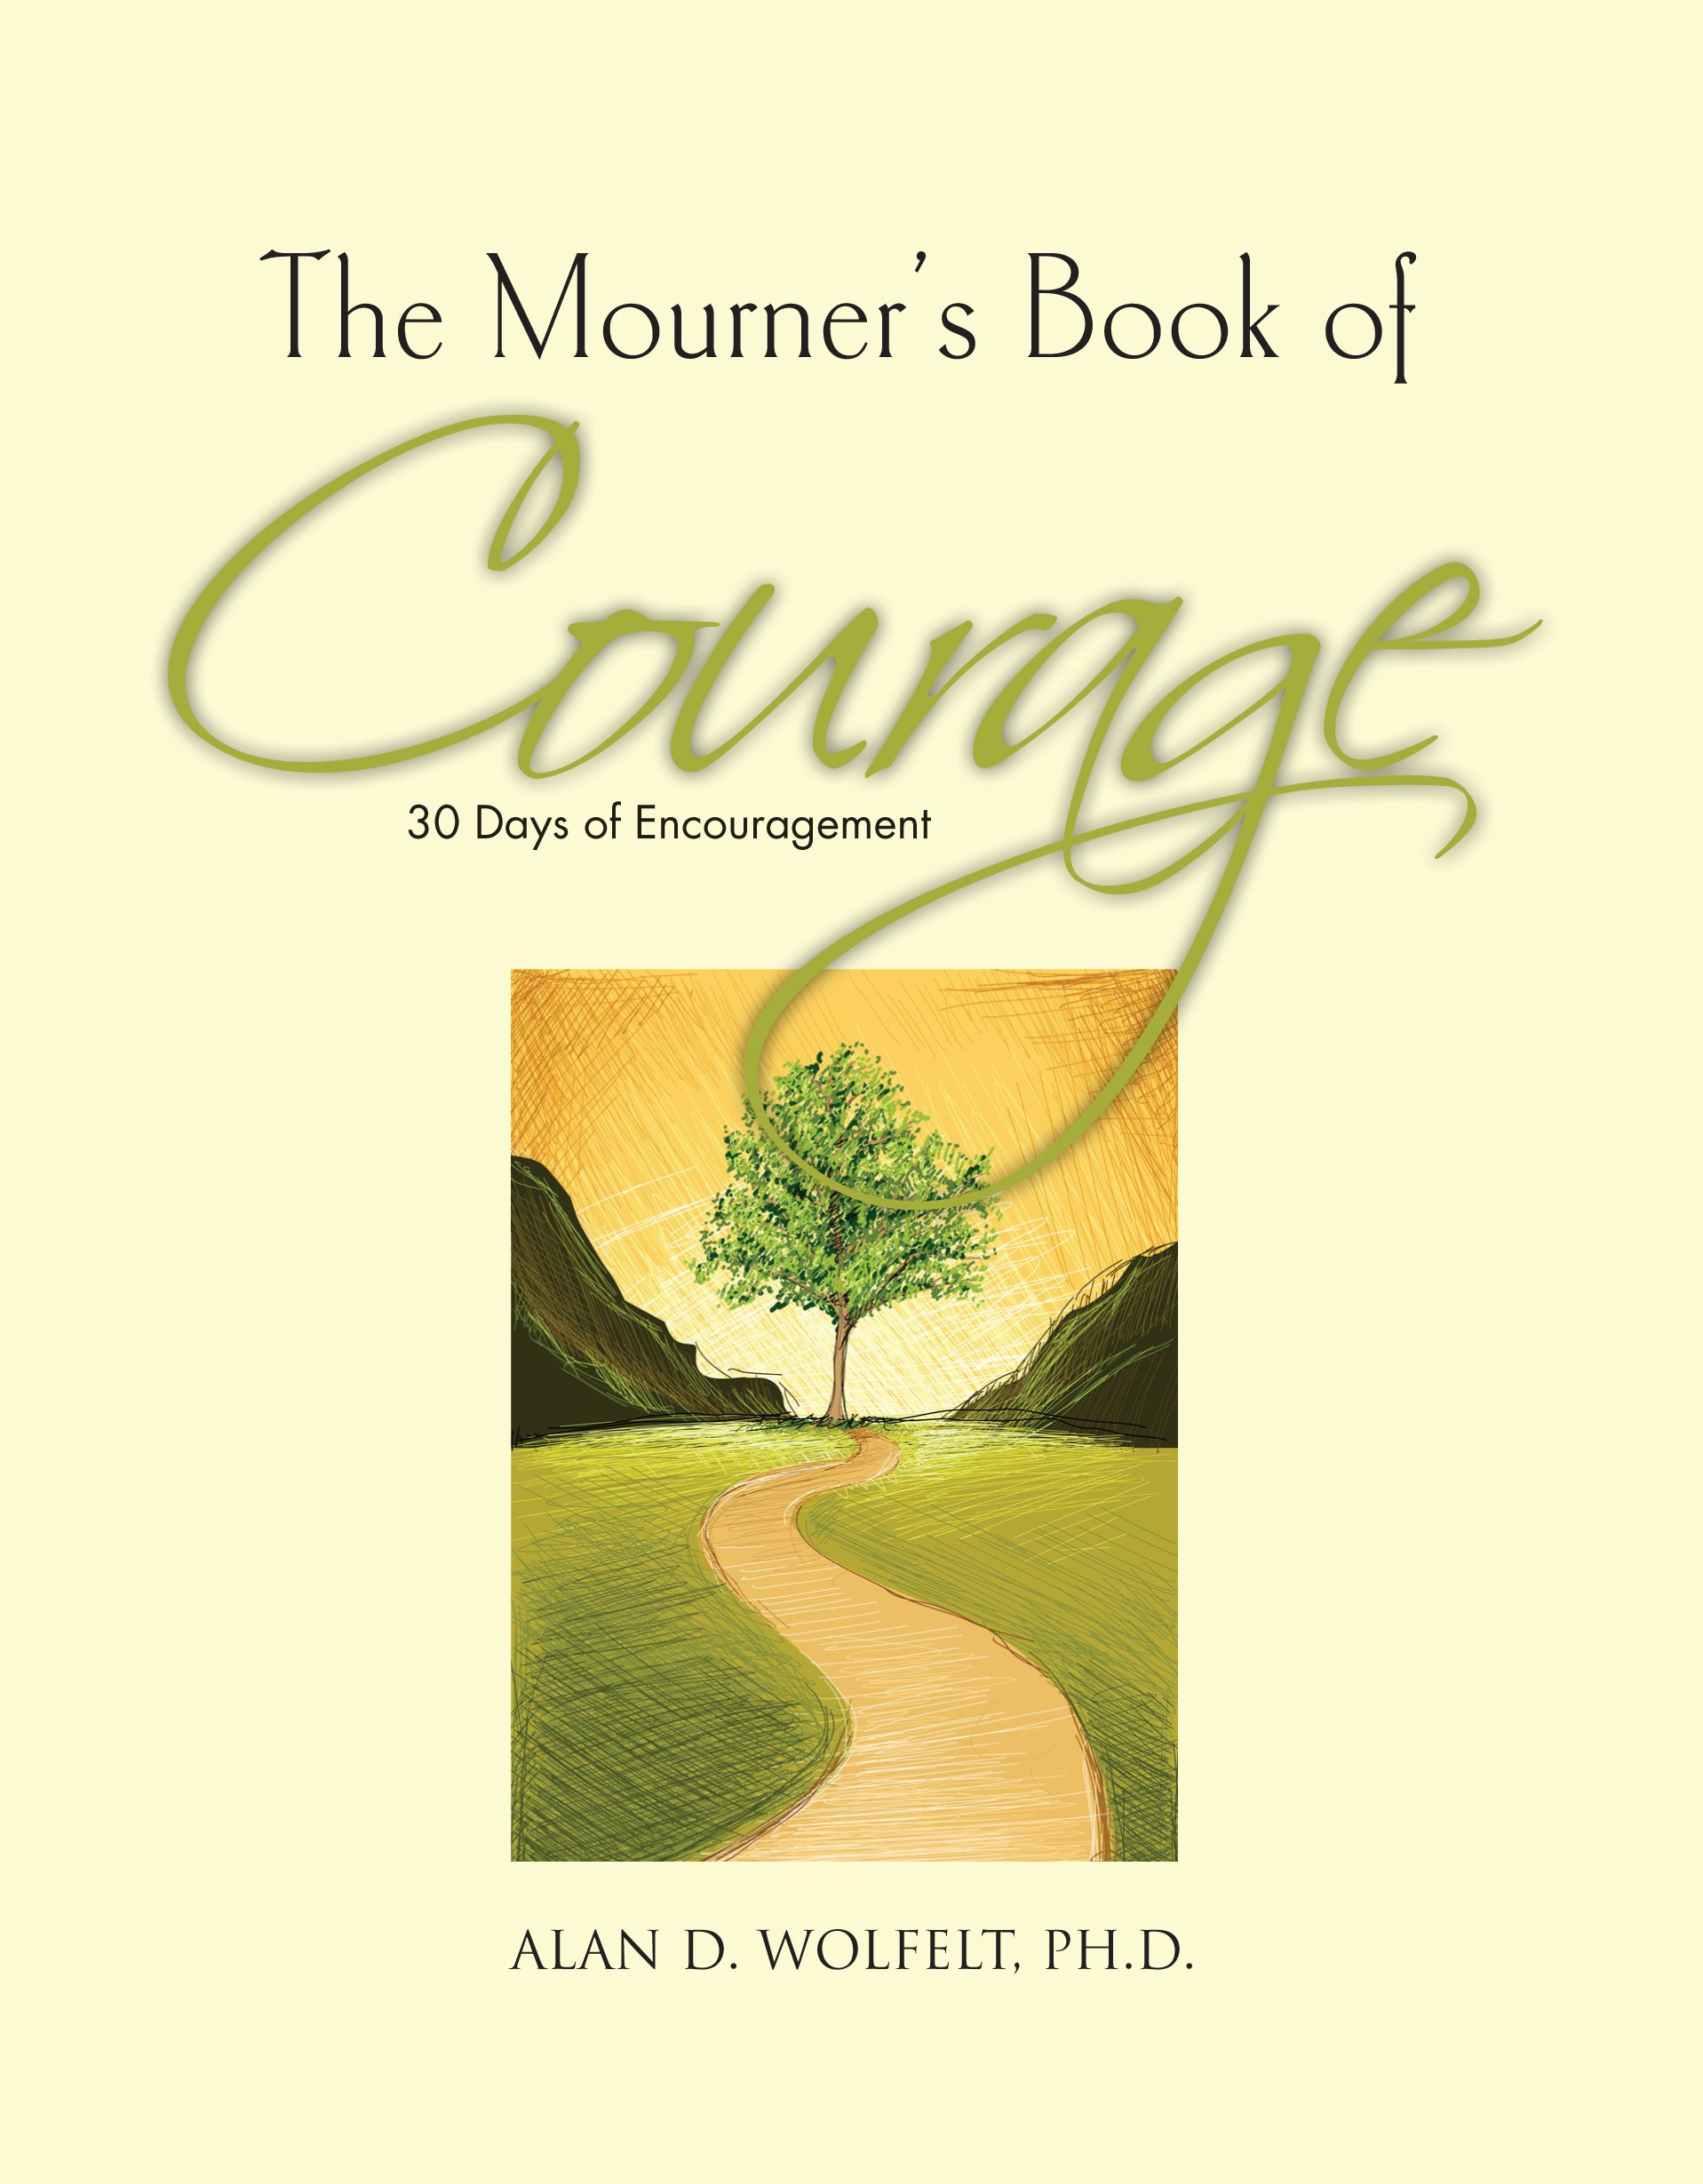 Mourners Book Of Courage